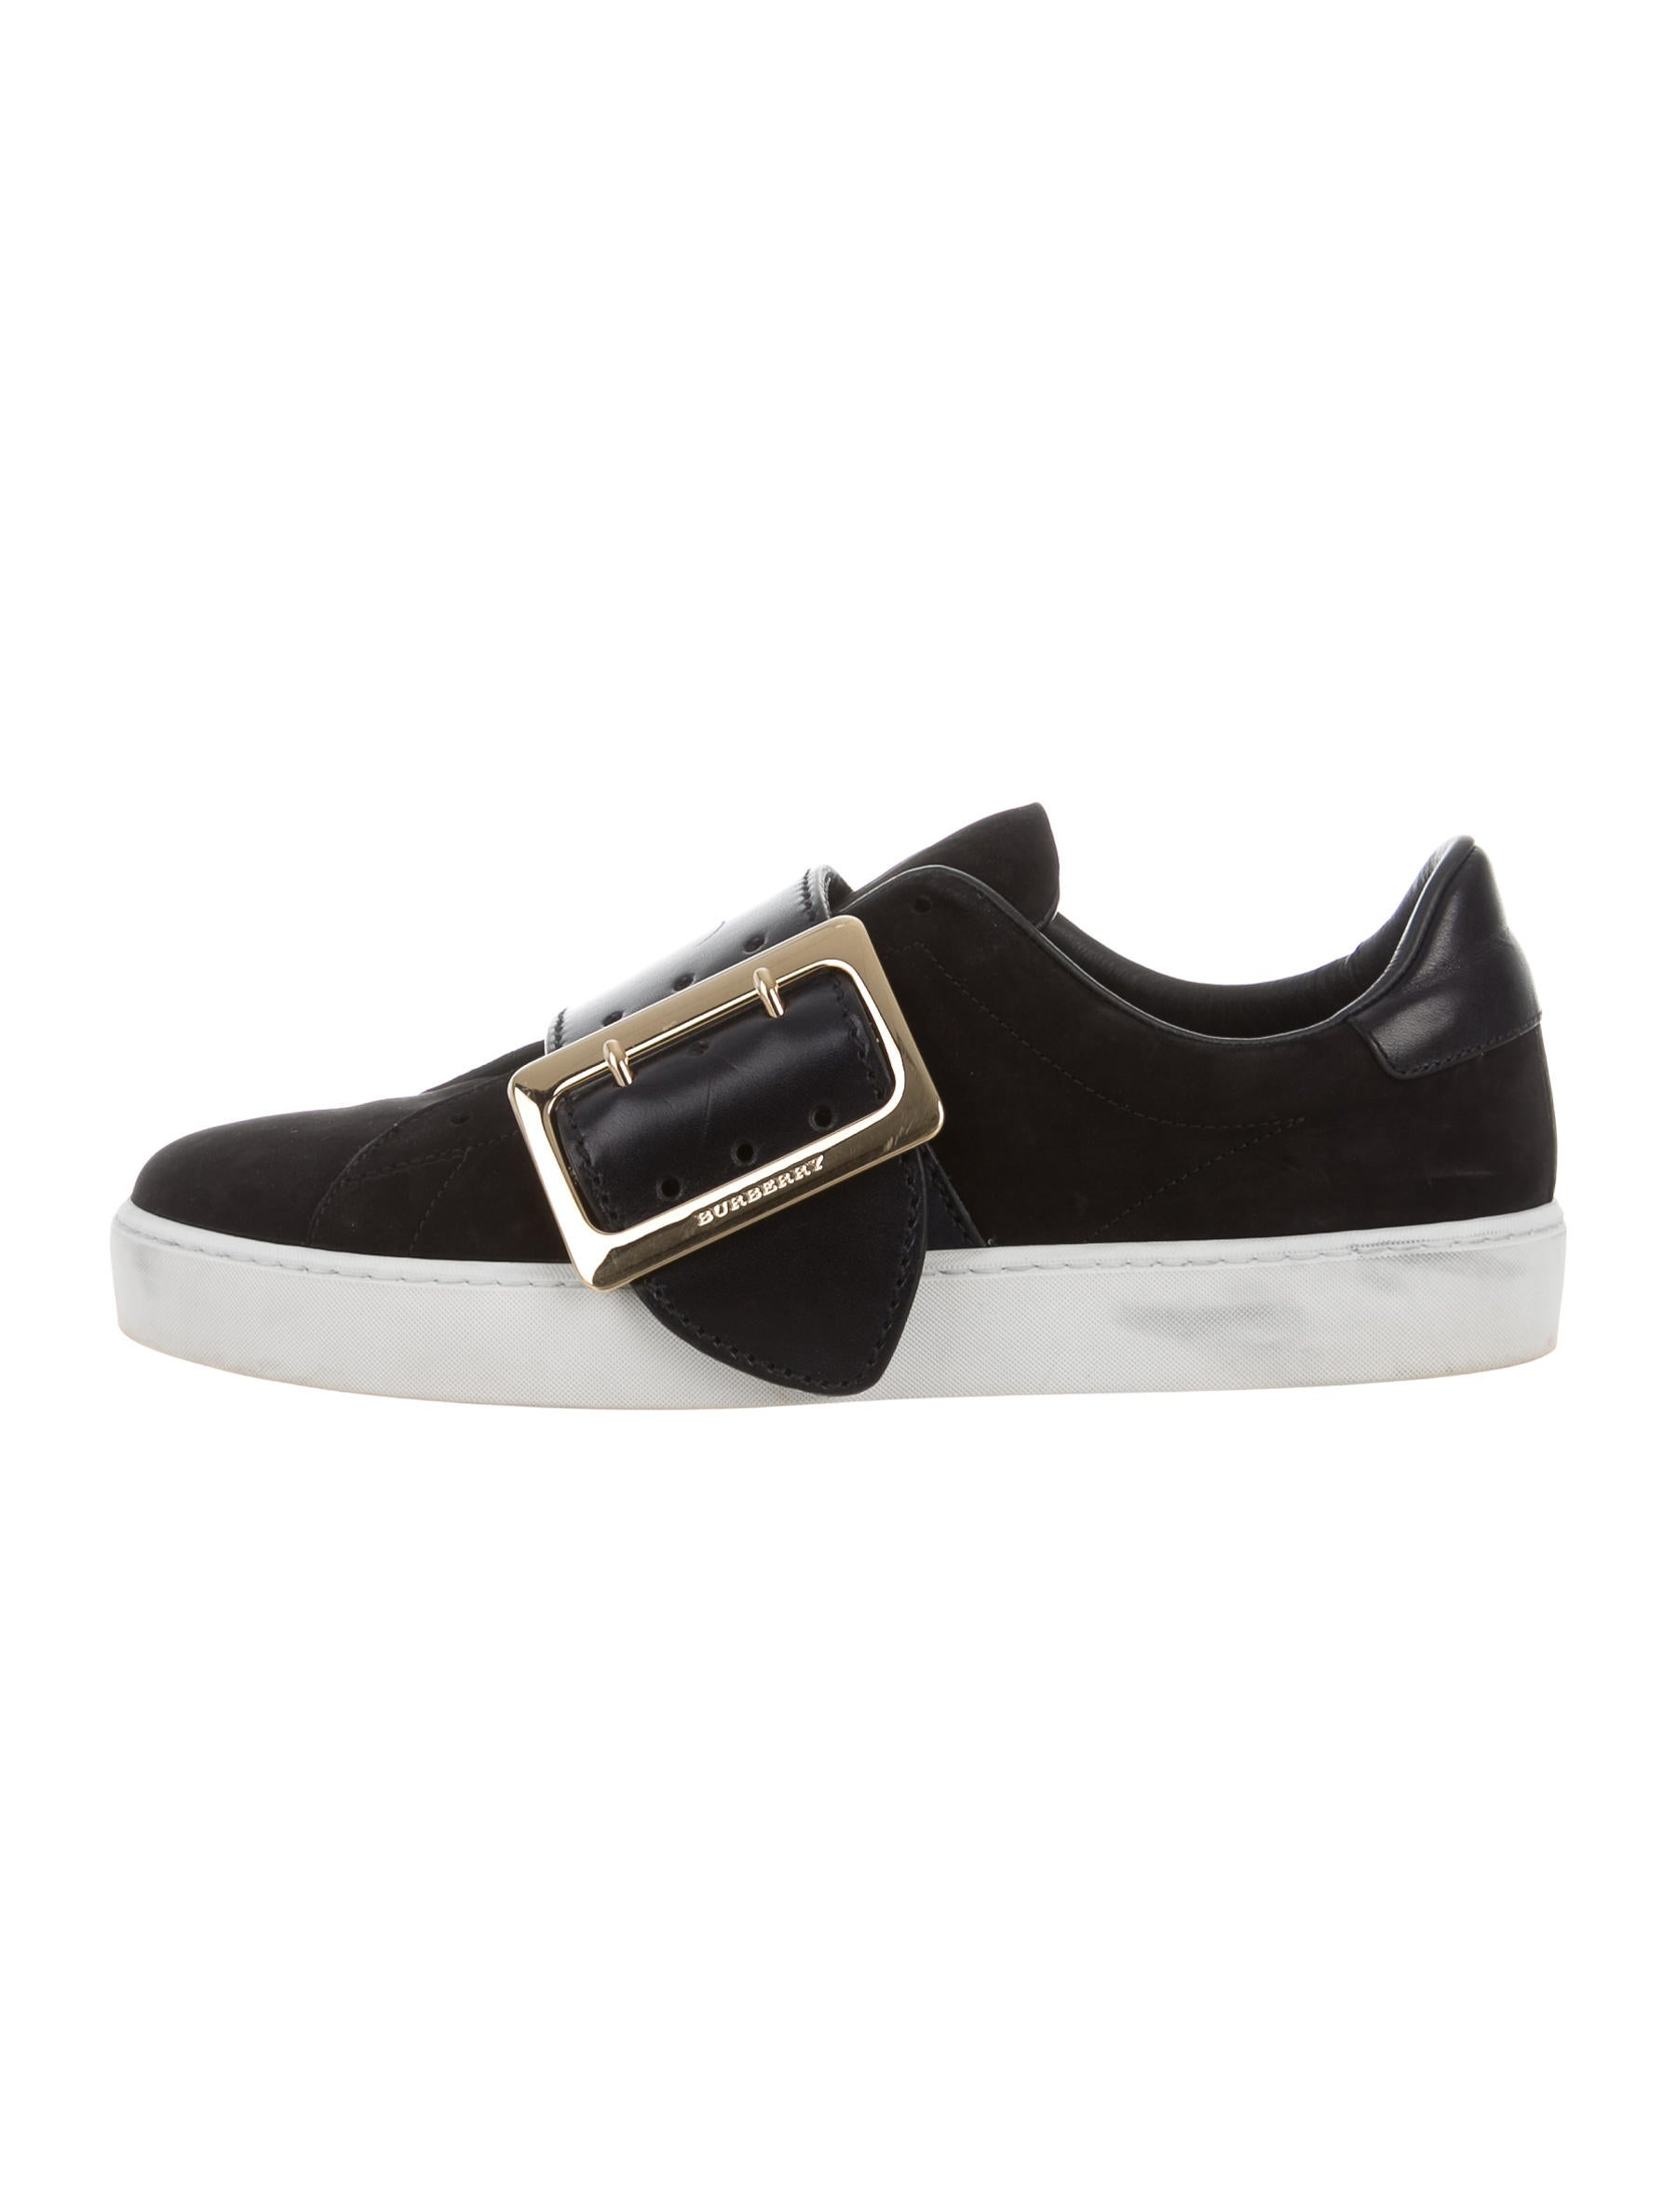 burberry nubuck slip on sneakers shoes bur69020 the